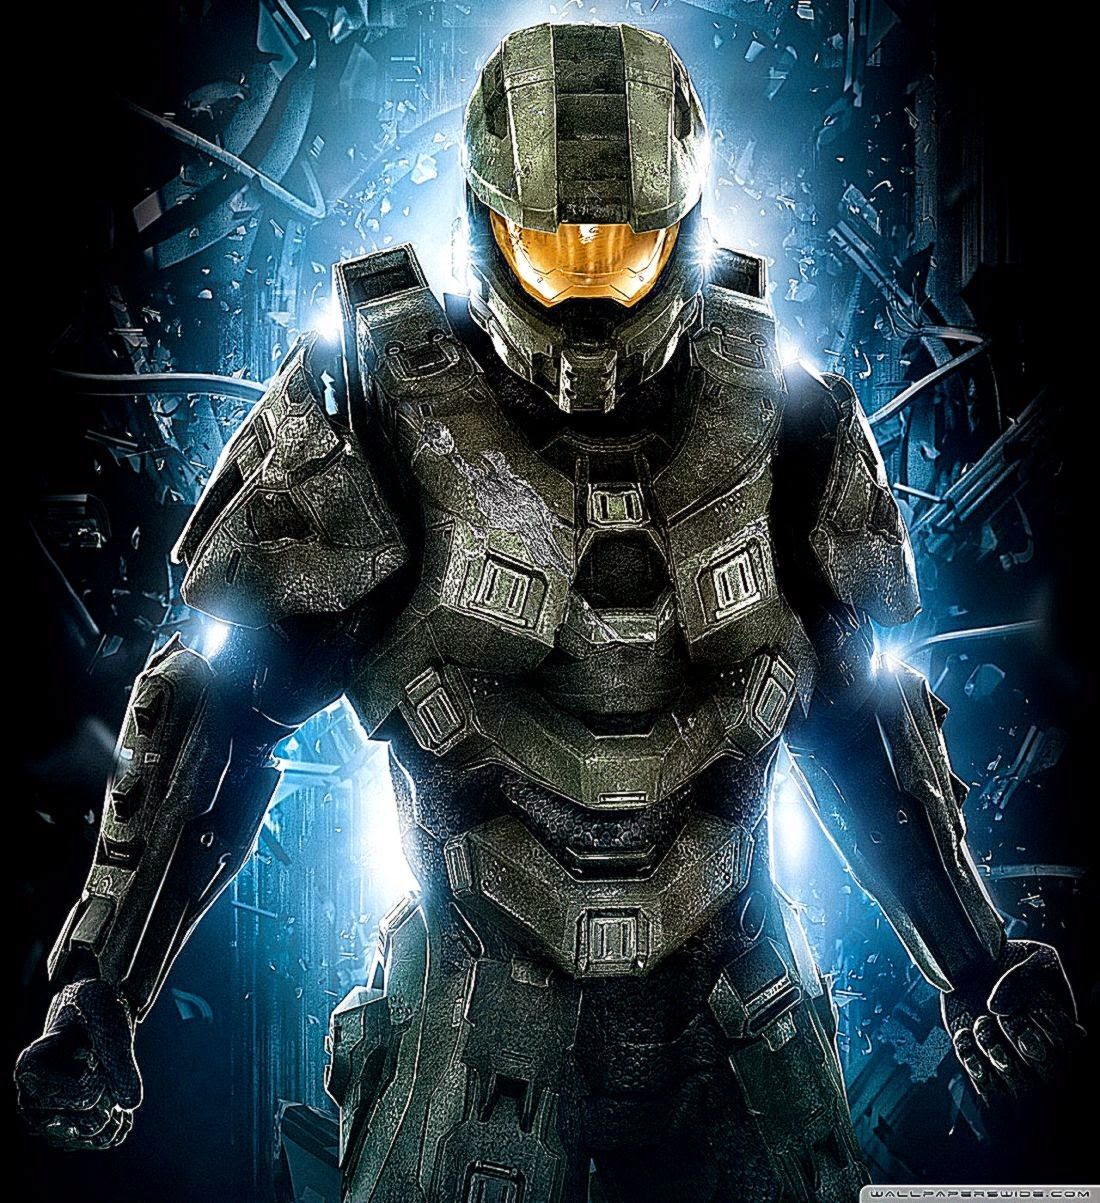 Halo Live Wallpaper: Halo Android Wallpaper